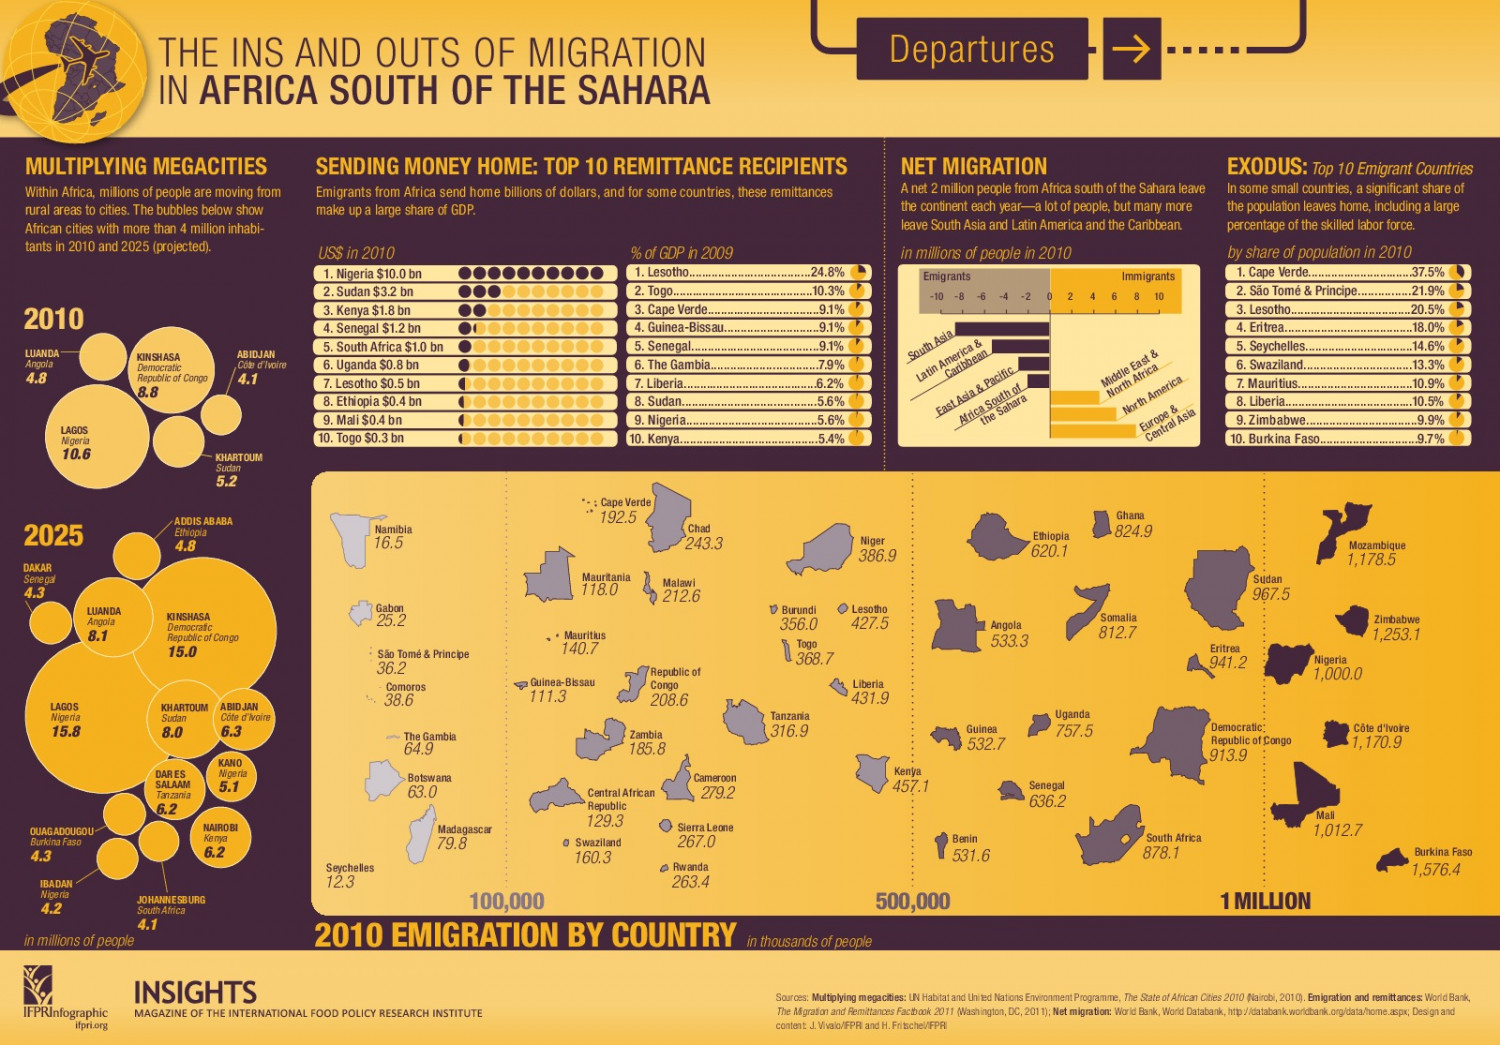 The Ins and Outs of Migration in Africa South of the Sahara Infographic